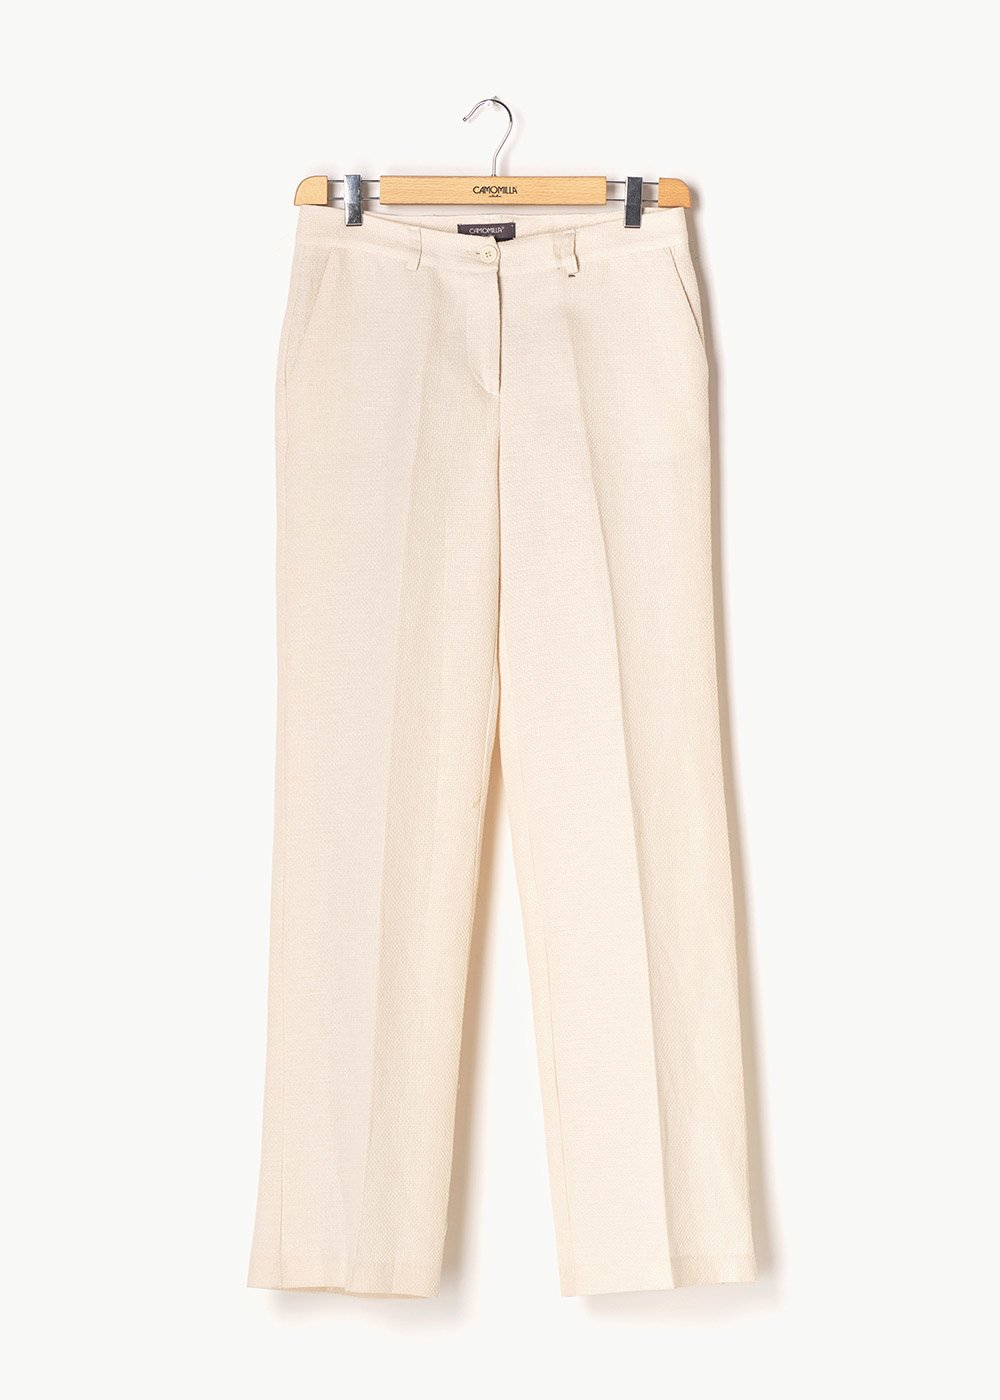 Giorgia trousers with matting effect - Ginger - Woman